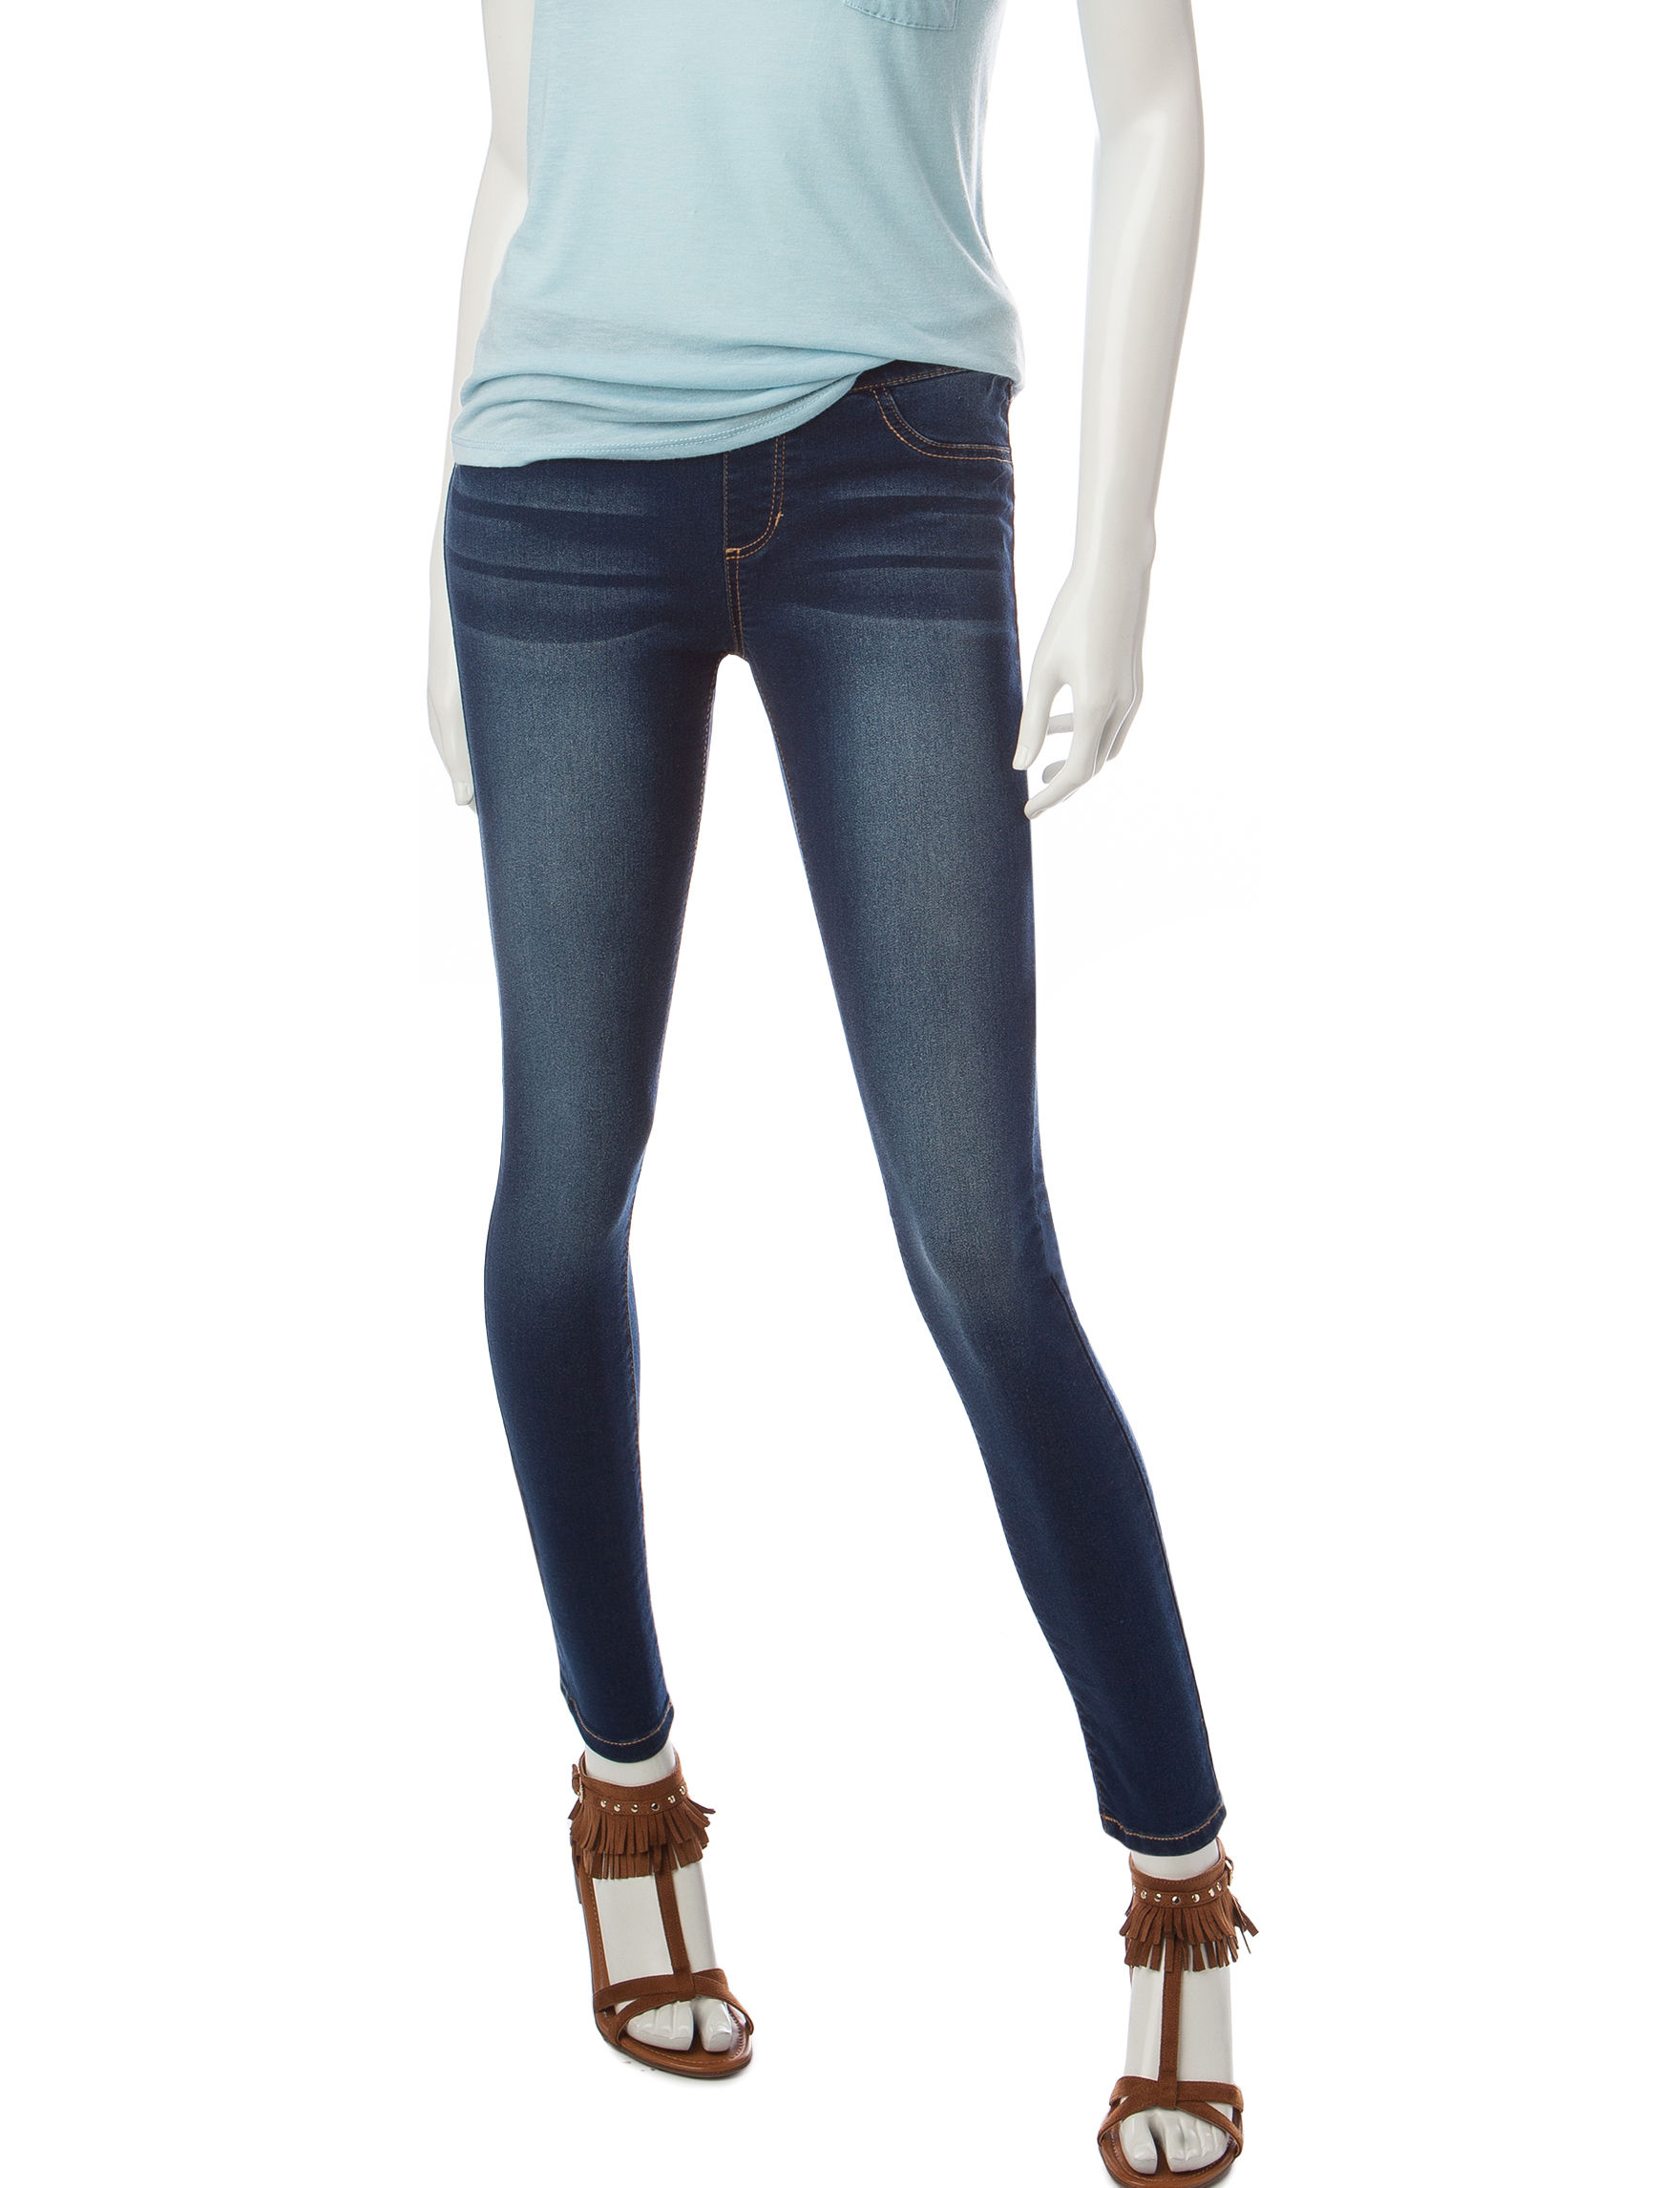 Wishful Park Dark Wash Skinny